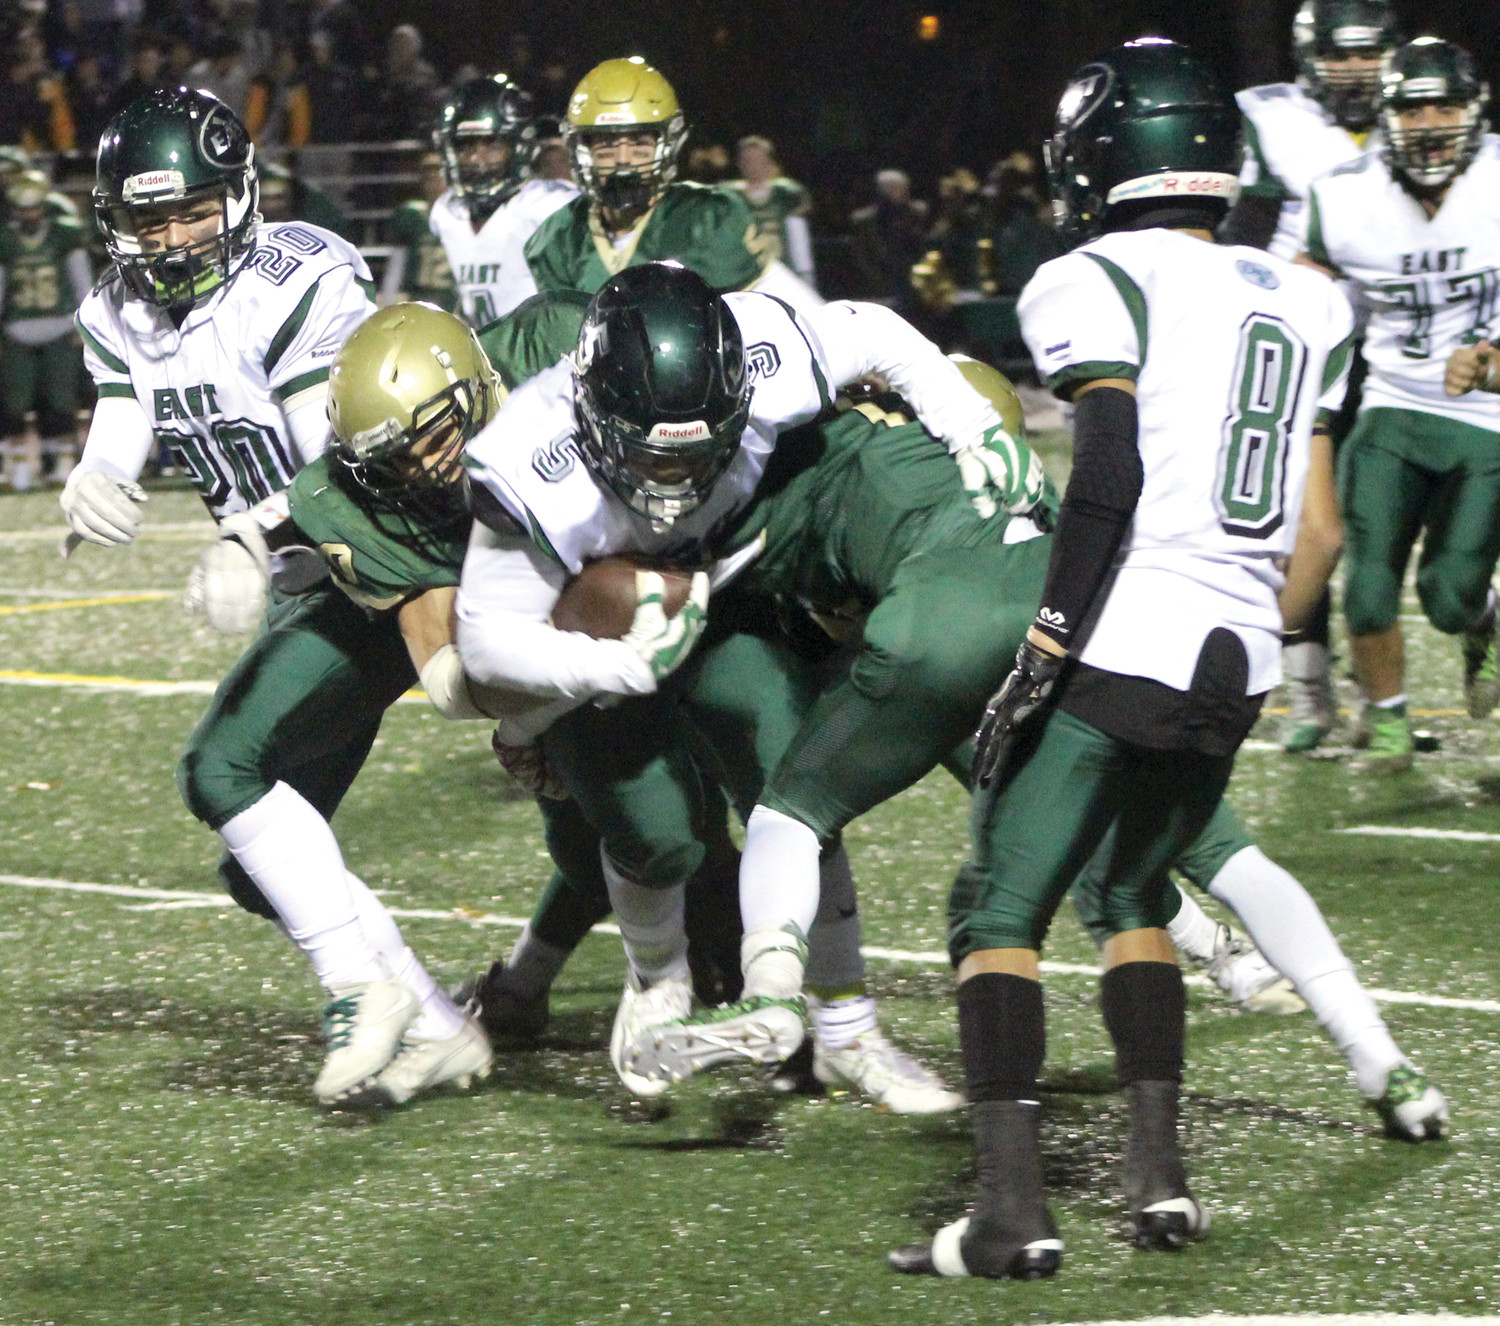 Rayven DeOliveira rushed for two touchdowns against Hendricken.